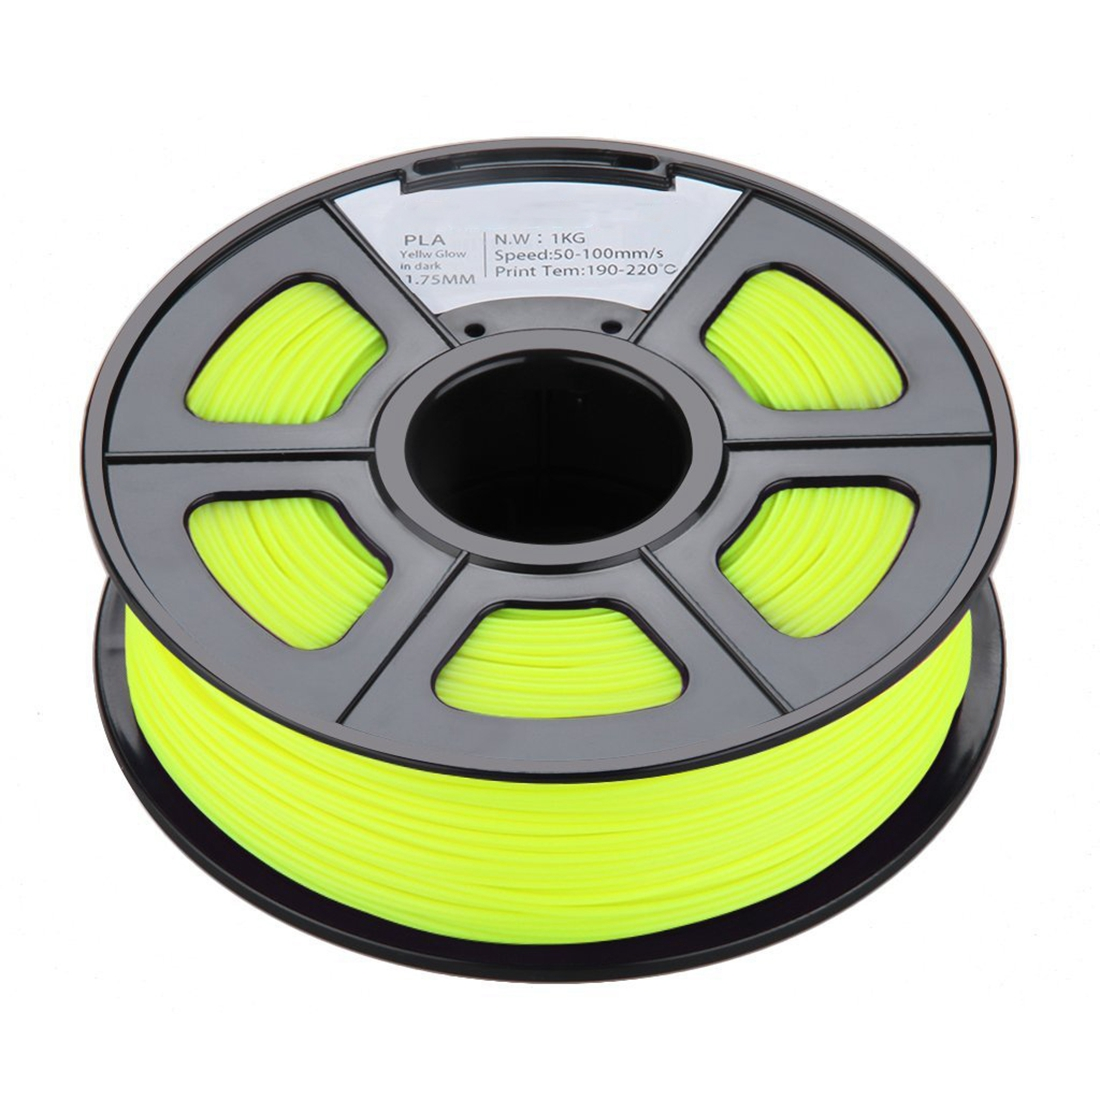 New 1.75mm Glow in the Dark PLA 3D Printer Filament - 1kg Spool (2.2 lbs) - Dimensional Accuracy +/- 0.02mm (Yellow) flsun 3d printer big pulley kossel 3d printer with one roll filament sd card fast shipping